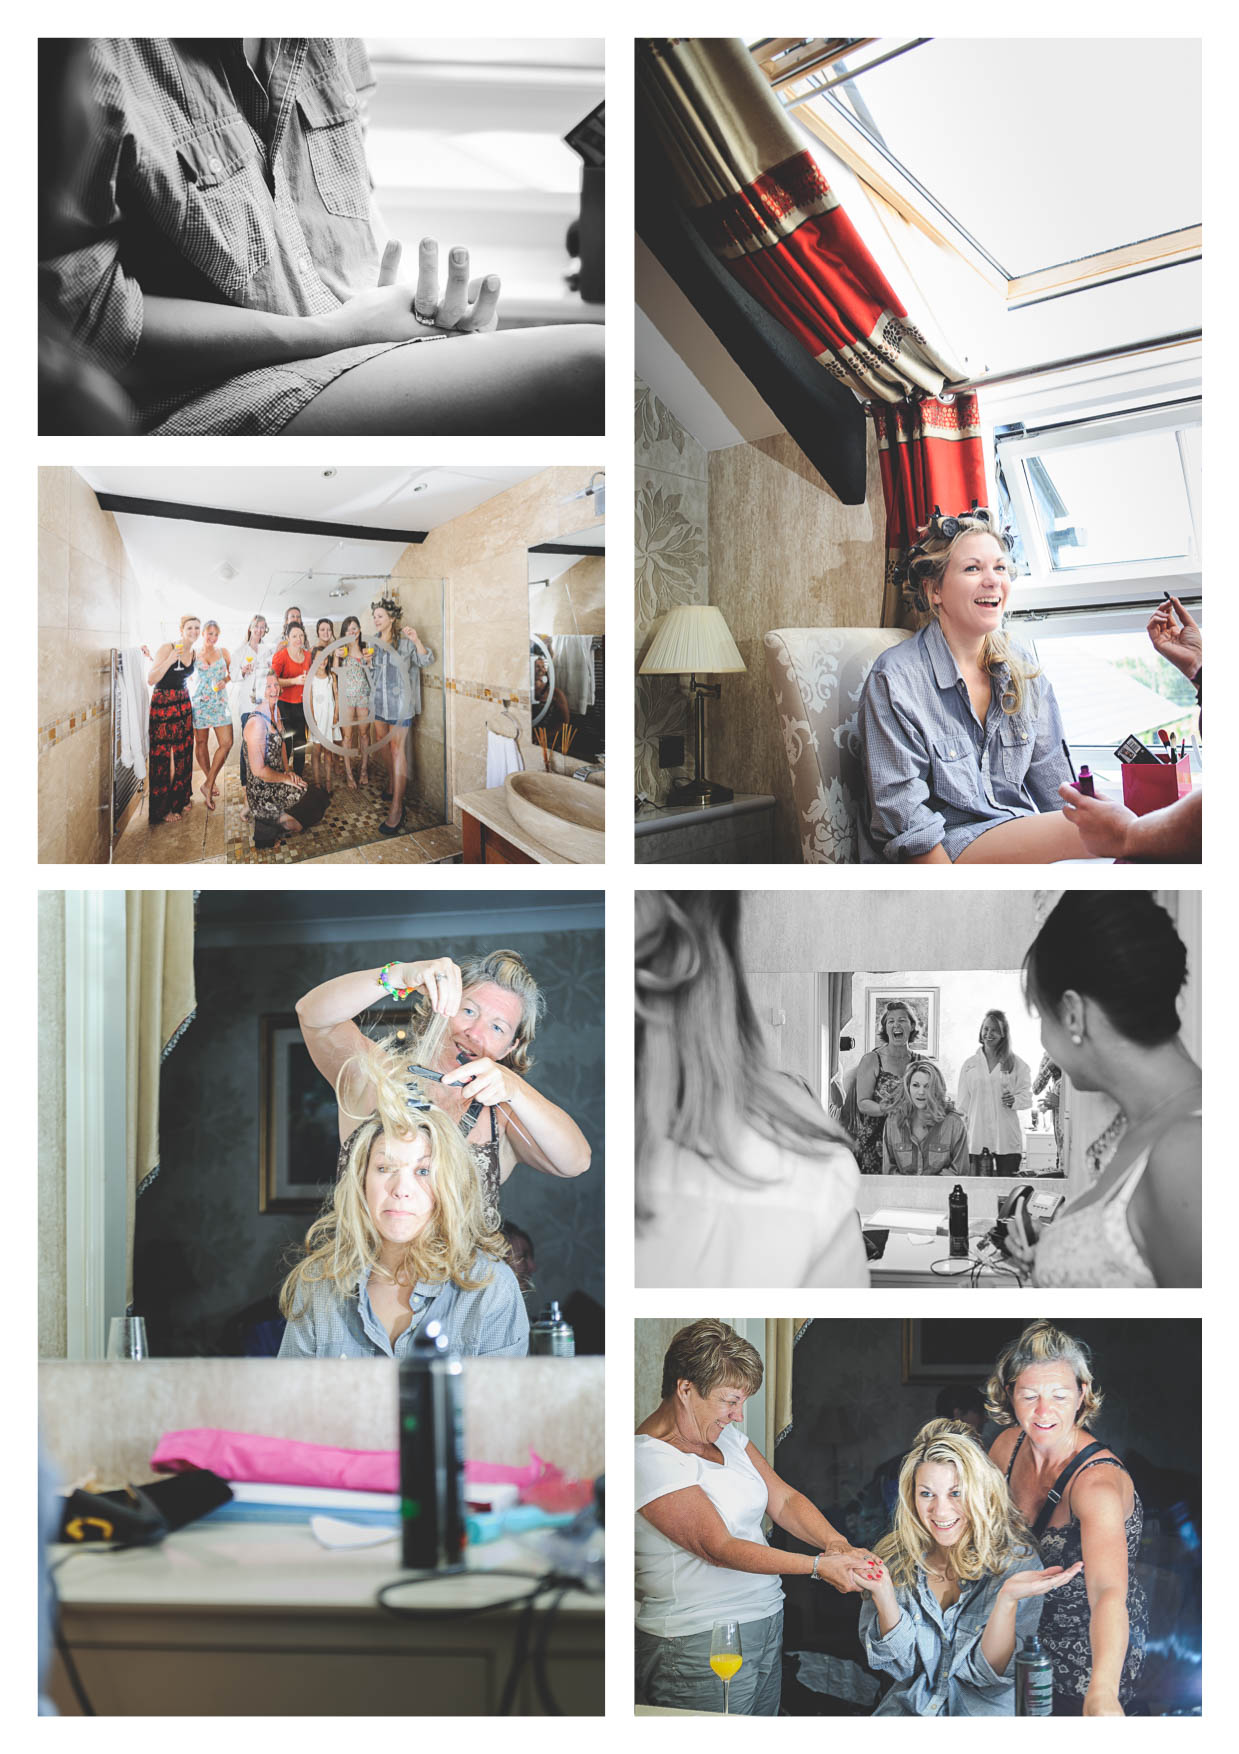 Photos of a bride getting ready for her wedding at llanerch vineyard in the vale of glamorgan